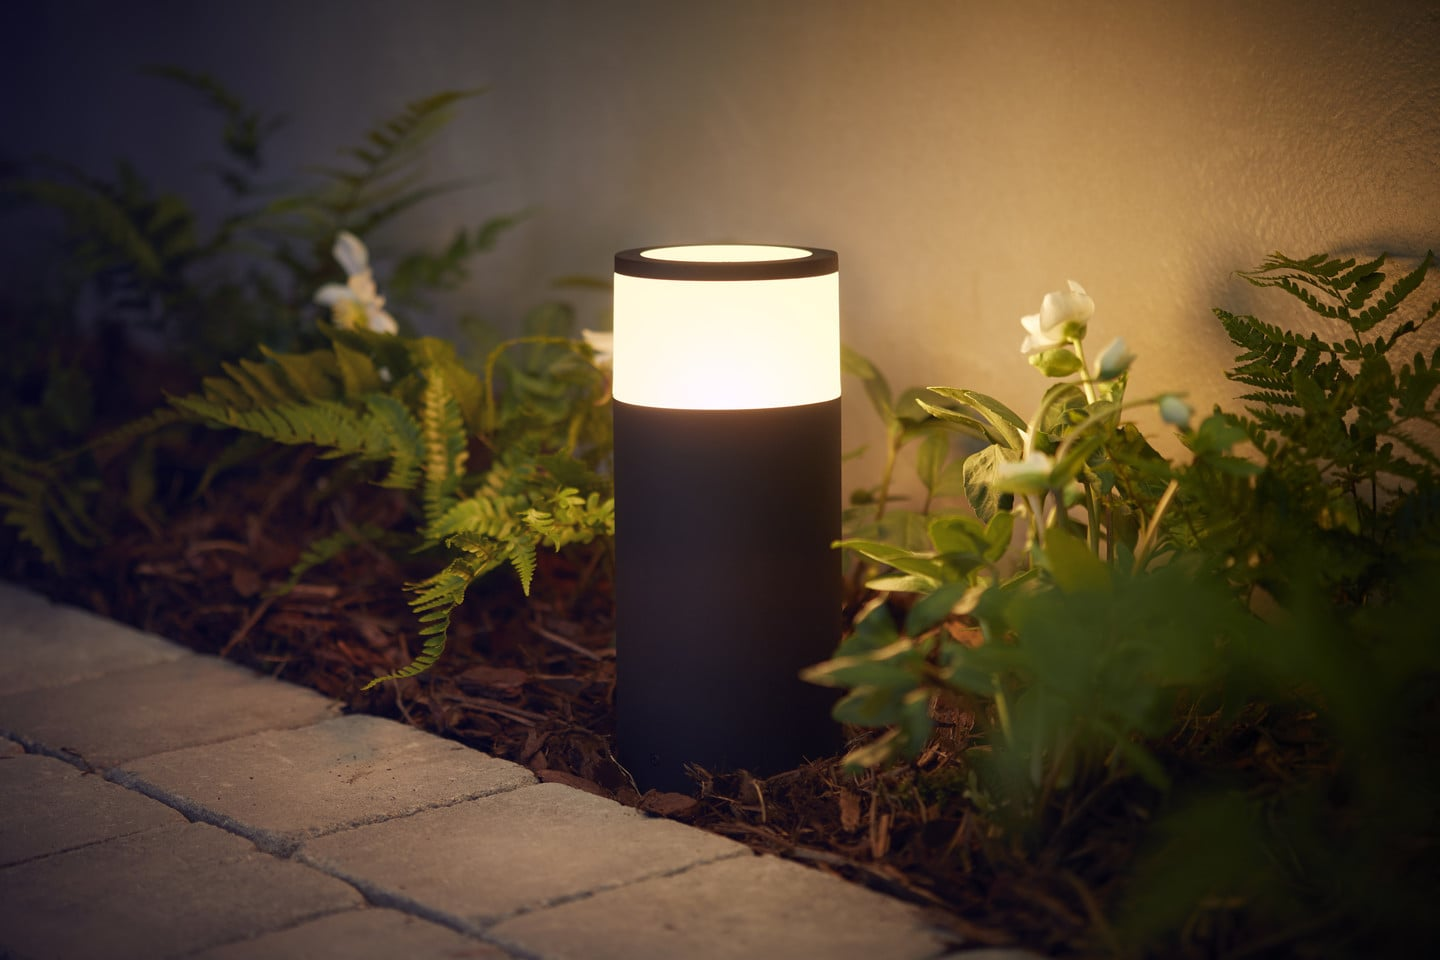 Philips Hue outdoor lighting range detailed - coming this summer